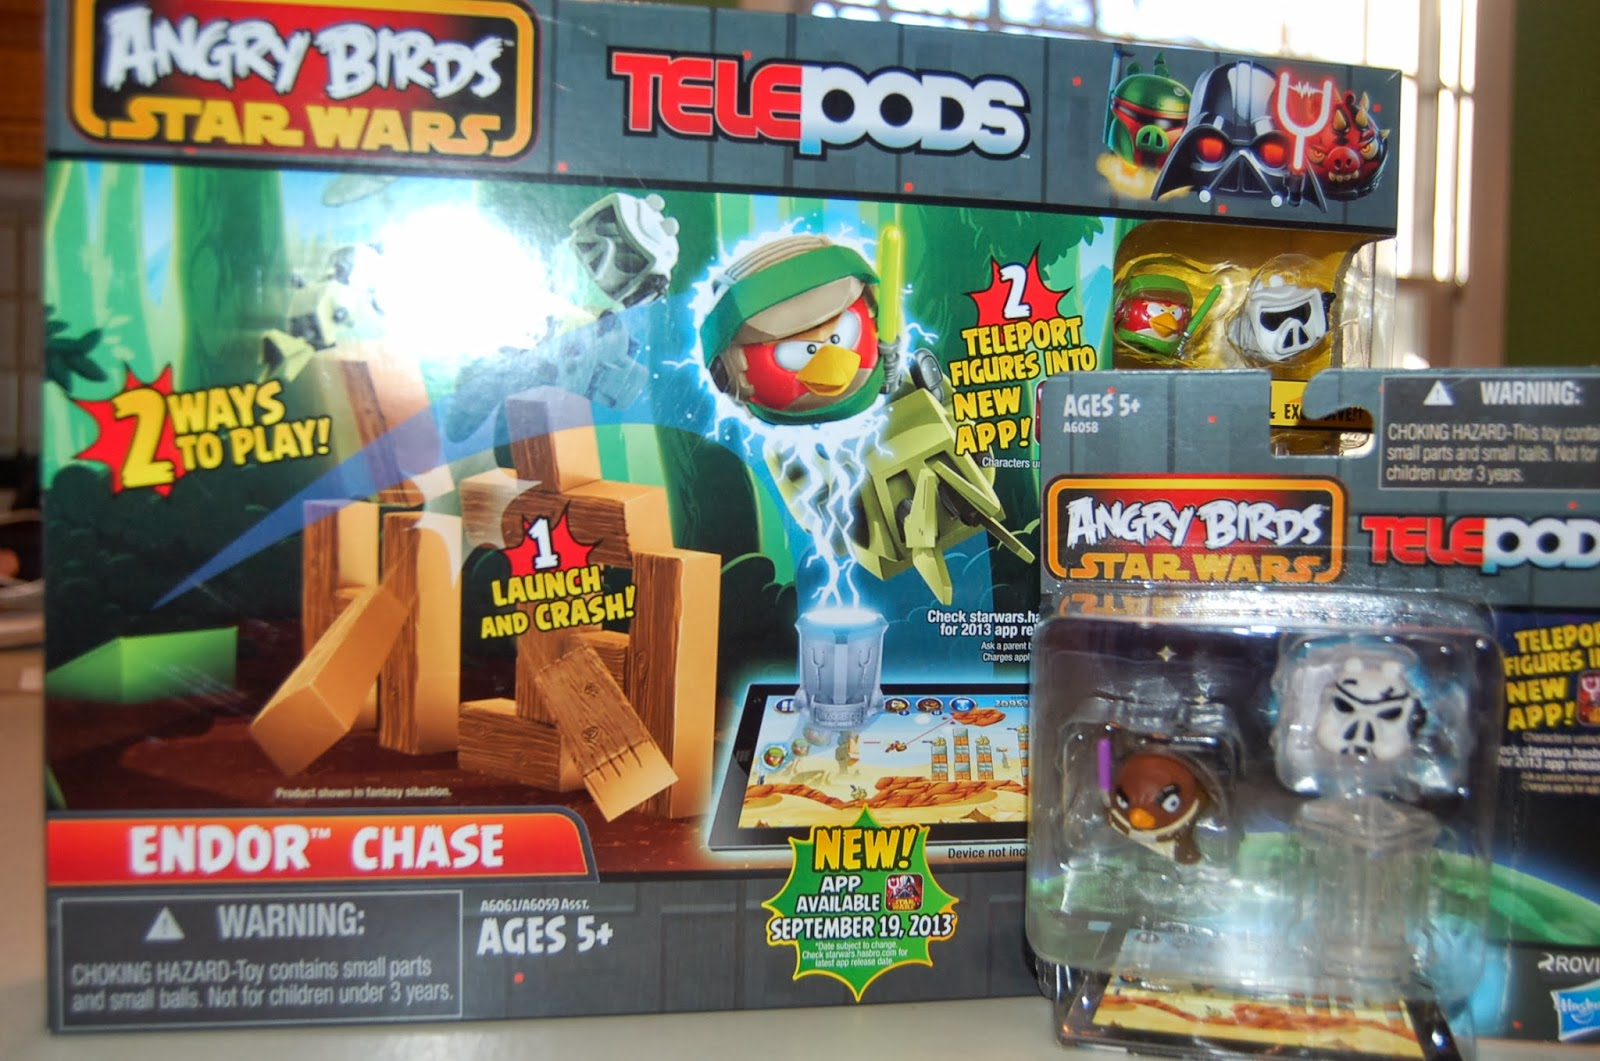 Angry Birds Star Wars Toys : Angry birds star wars ii s telepods tech is really quite clever